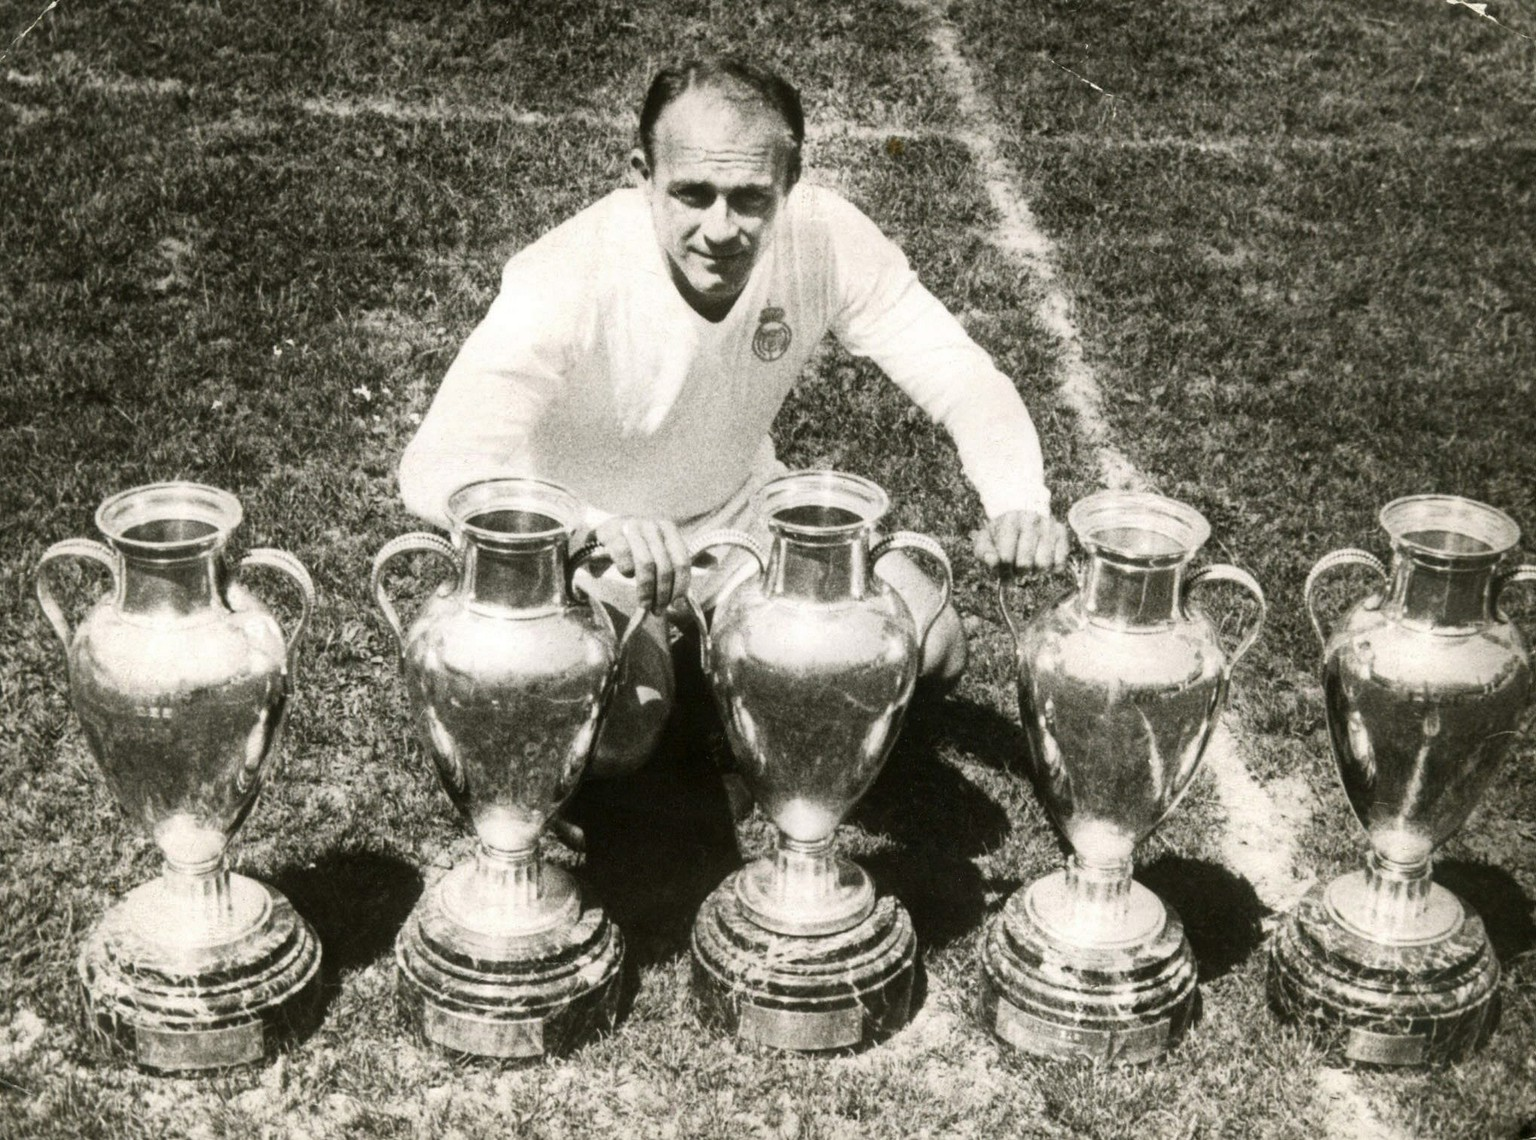 epa04304016 (FILE) A file picture dated 25 May 1960 shows Real Madrid's player Alfredo di Stefano posing with the five trophies of at that time Europe's Cup won by Real Madrid at Chamartin stadium in Madrid, central Spain. Di Stefano died at Gregorio Maranon hospital in Madrid on 07 July, relatives informed. Di Stefano, who turned 88 on 04 July 2014, was admited to Gregorio Maranon hospital on 05 July 2014 as a result of a cardiac-respiratory arrest he has suffered in the surroundings of Santiago Bernabeu stadium.  EPA/-